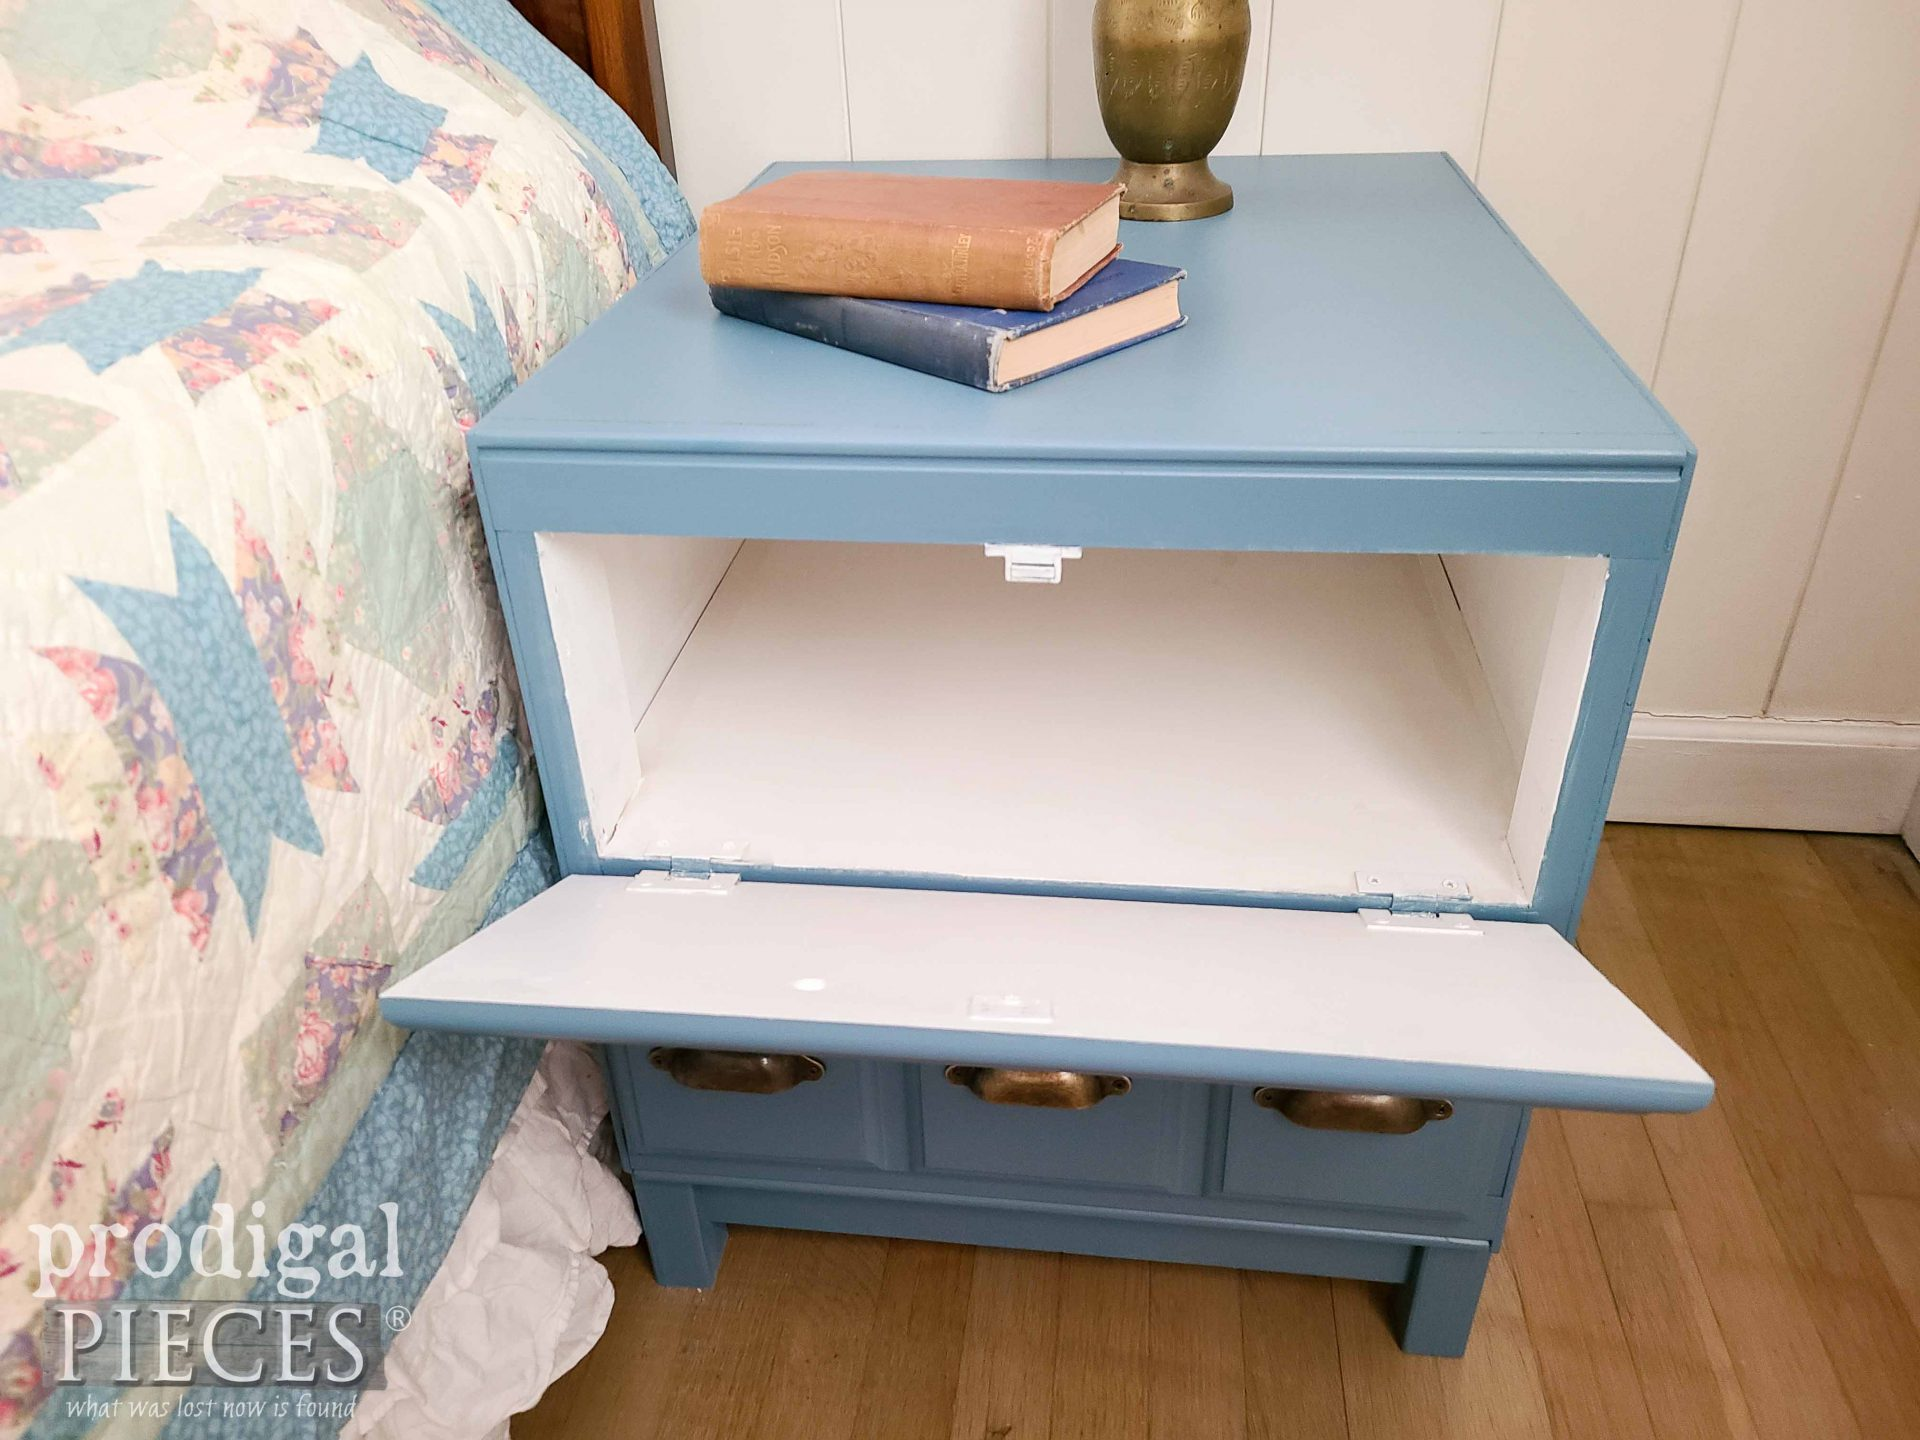 Top Open Cabinet Side Table Redesigned by Larissa of Prodigal Pieces   prodigalpieces.com #prodigalpieces #furniture #home #diy